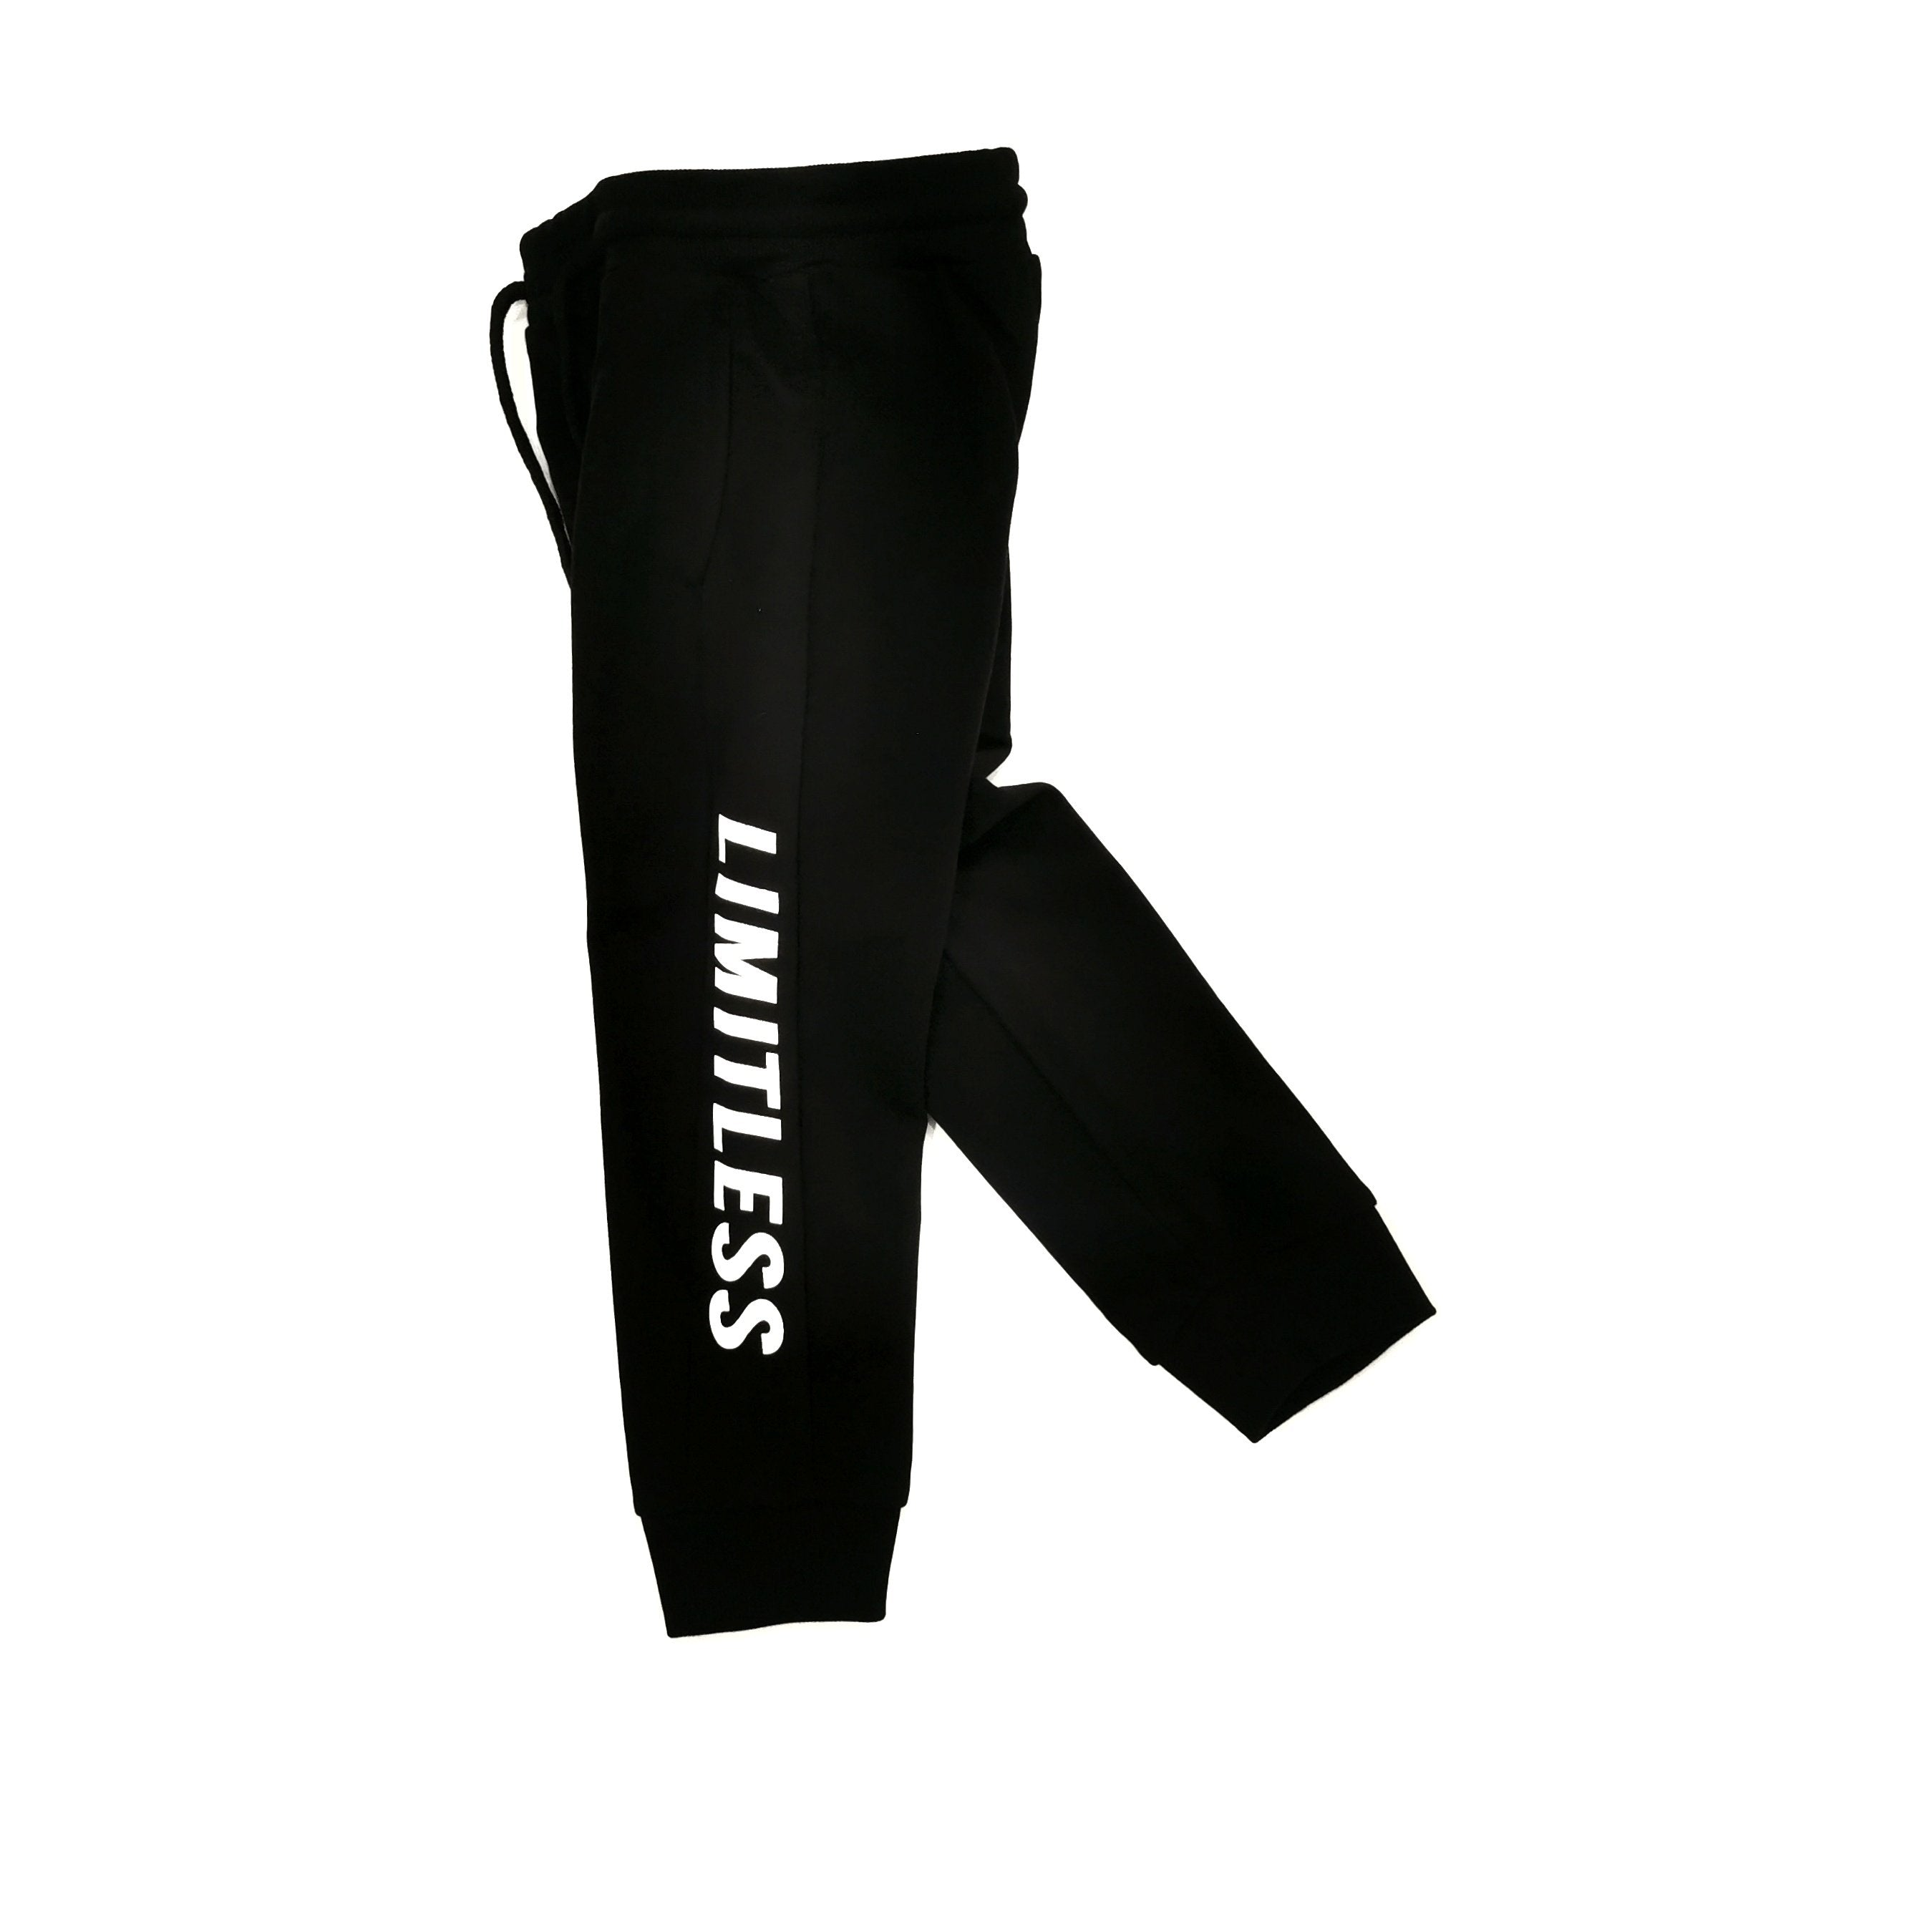 Limitless Black Sweatpants